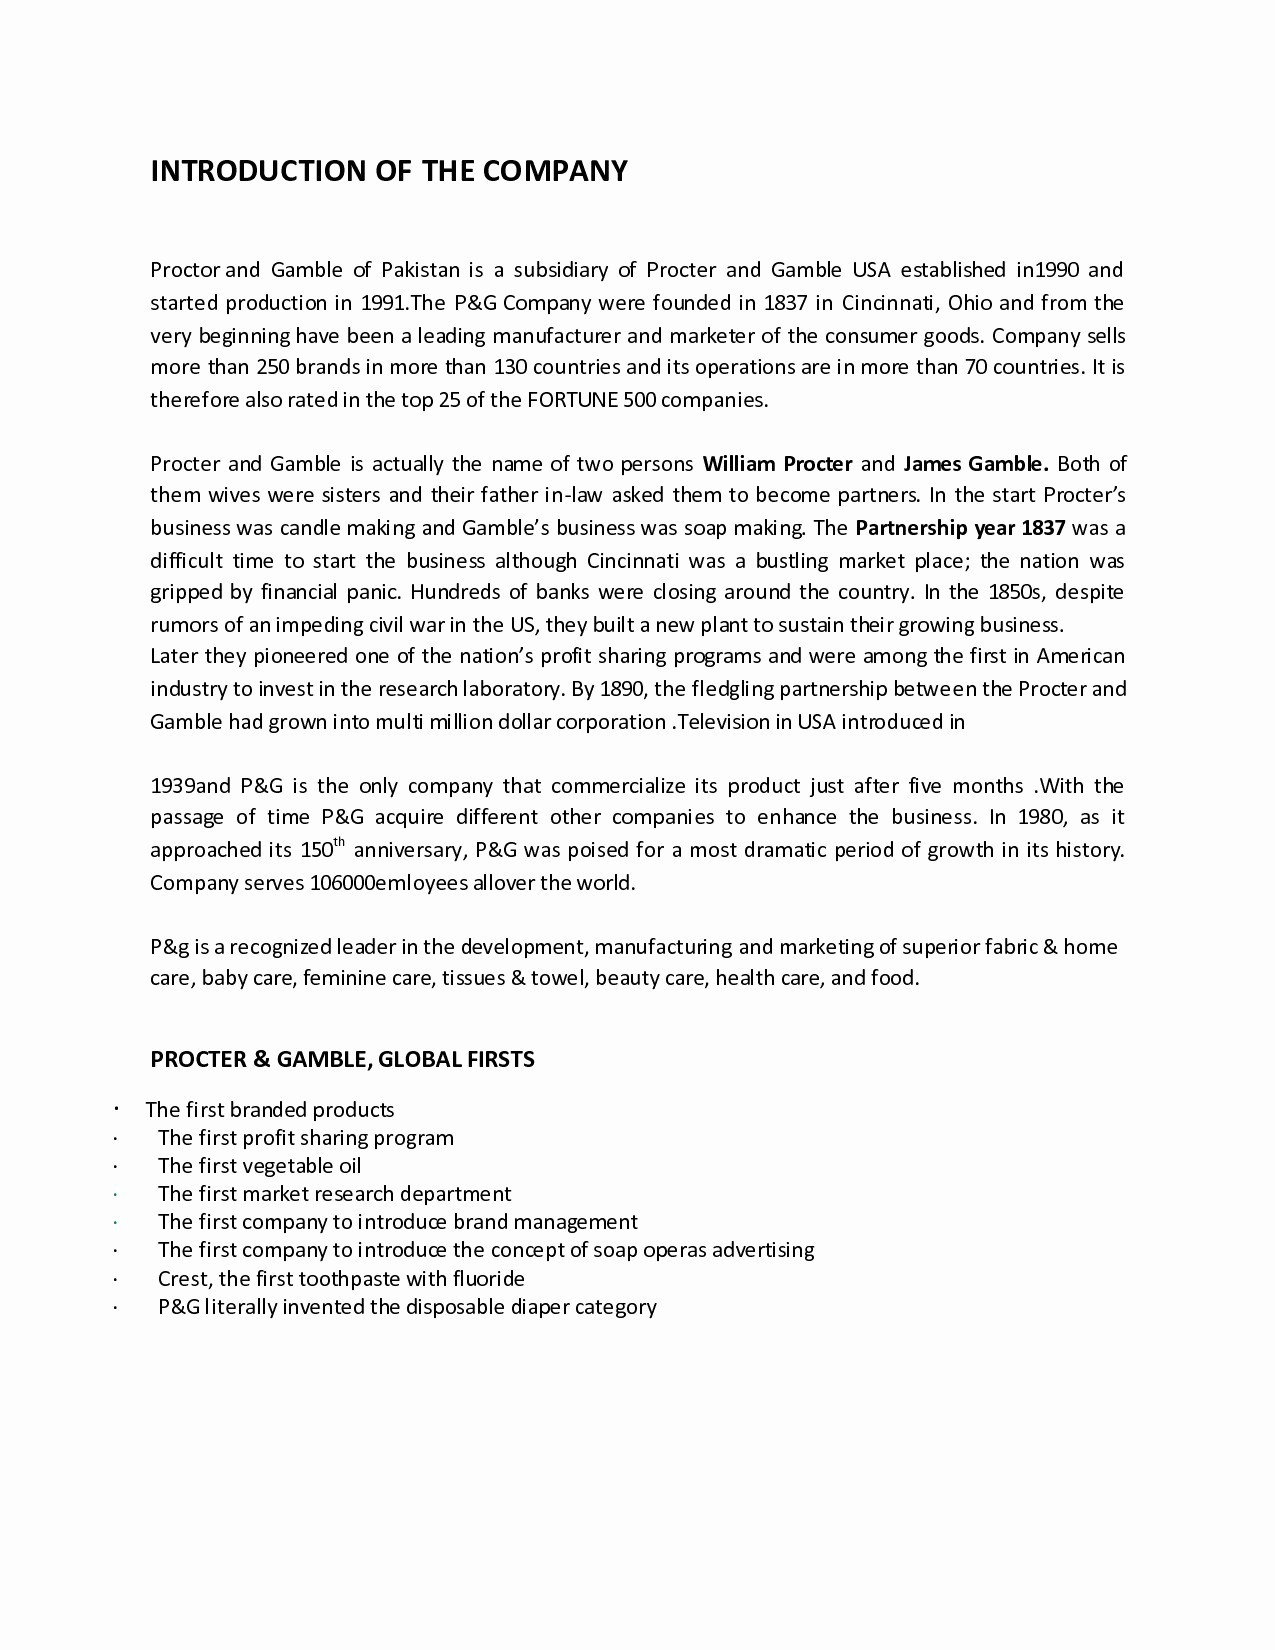 Proposal Letter Template - Sample Email Cover Letter for Business Proposal